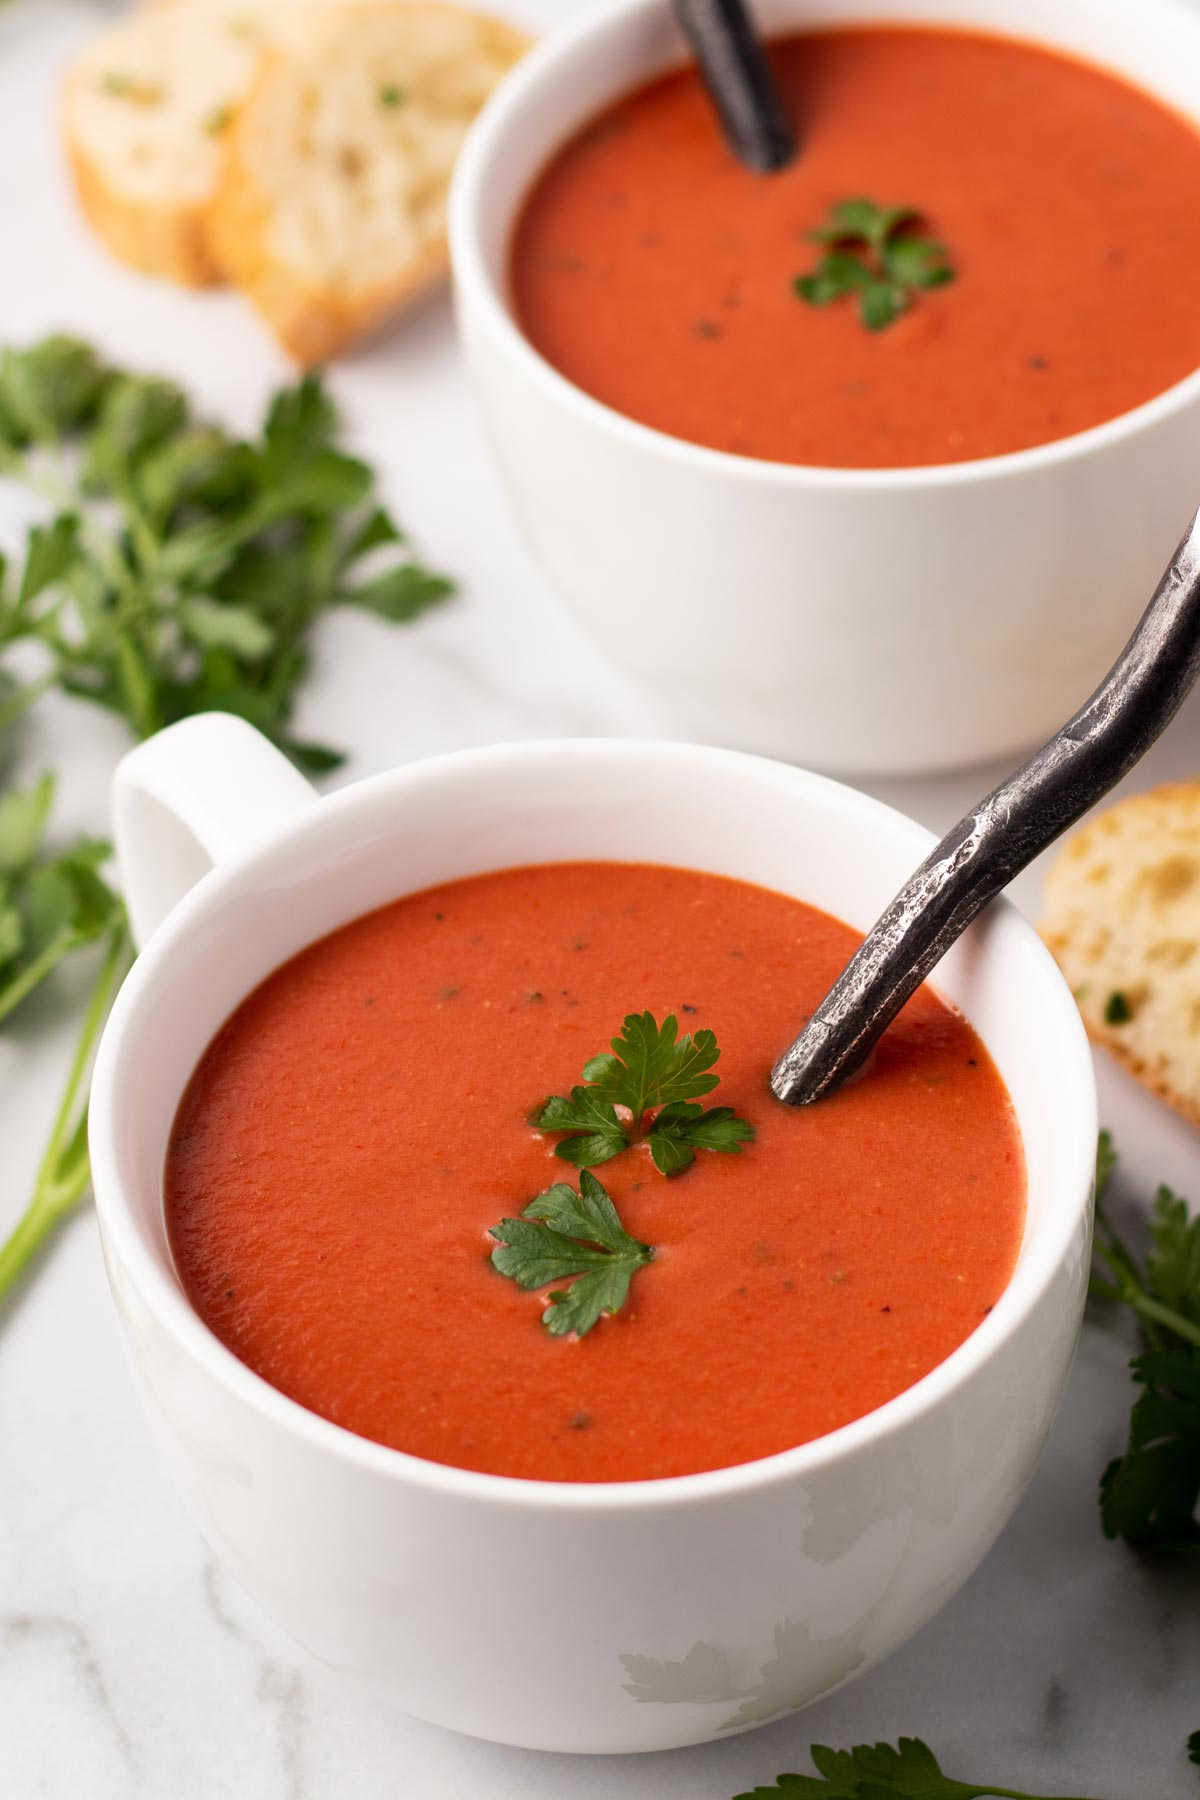 Two white bowls filled with tomato soup made with tomato paste.